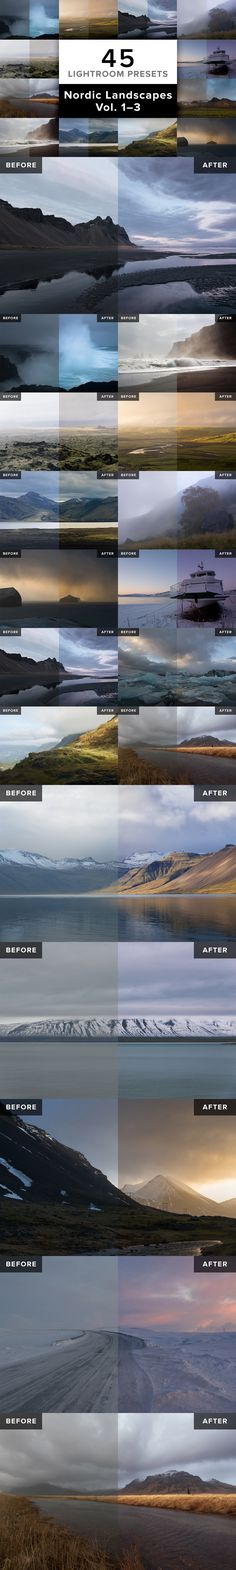 NORDIC LANDSCAPES – Vol. 1, 2 & 3 // 45 Lightroom Presets specially developed for landscape photos taken in Nordic countries like Iceland, Canada, Norway or Greenland.